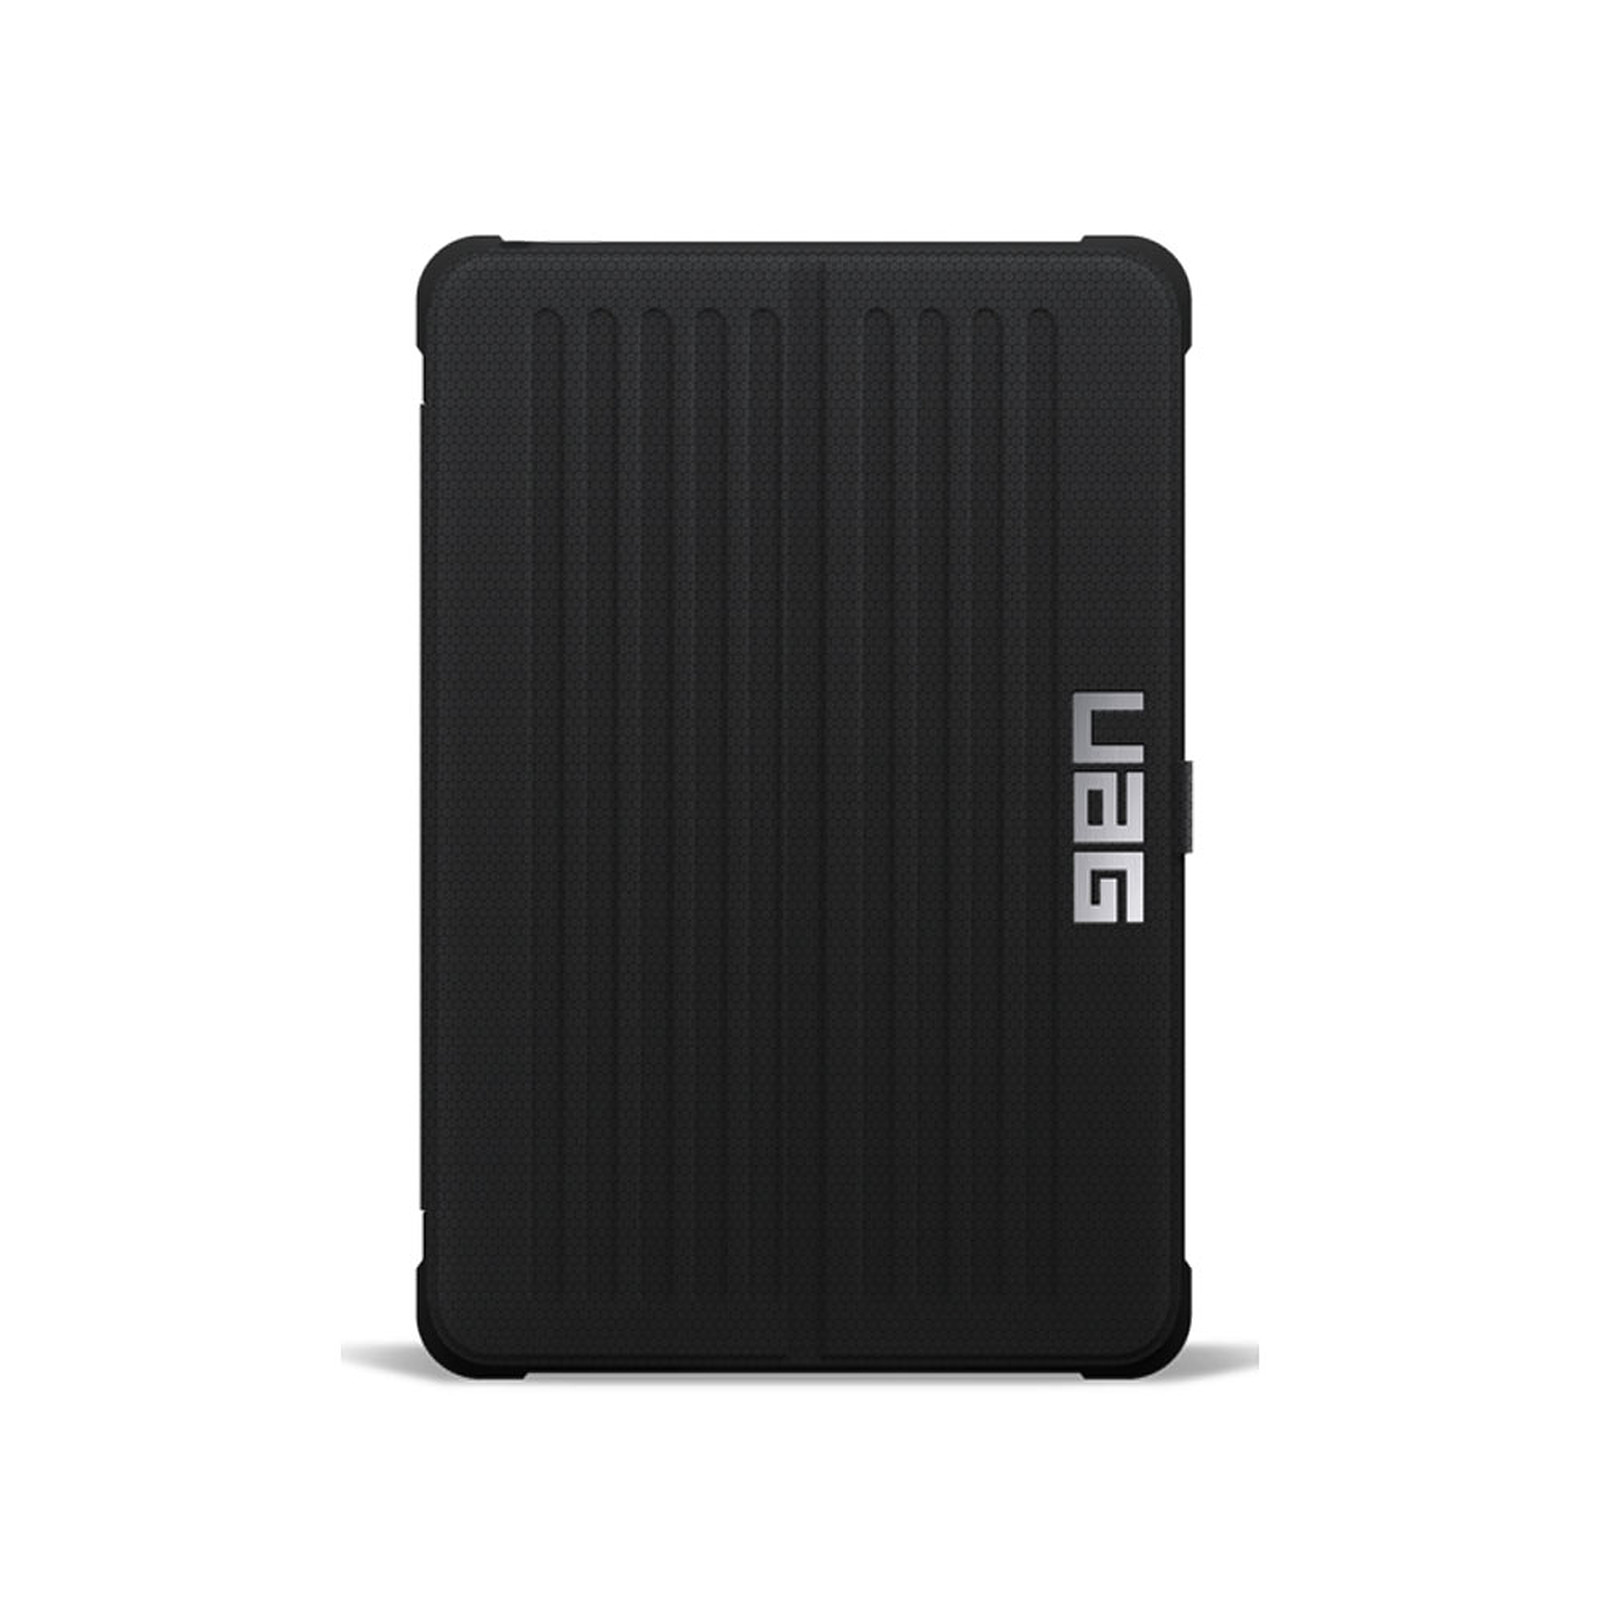 Etui Tablette Uag Protection Ipad Mini 4 Noir Etui Tablette Uag Sur